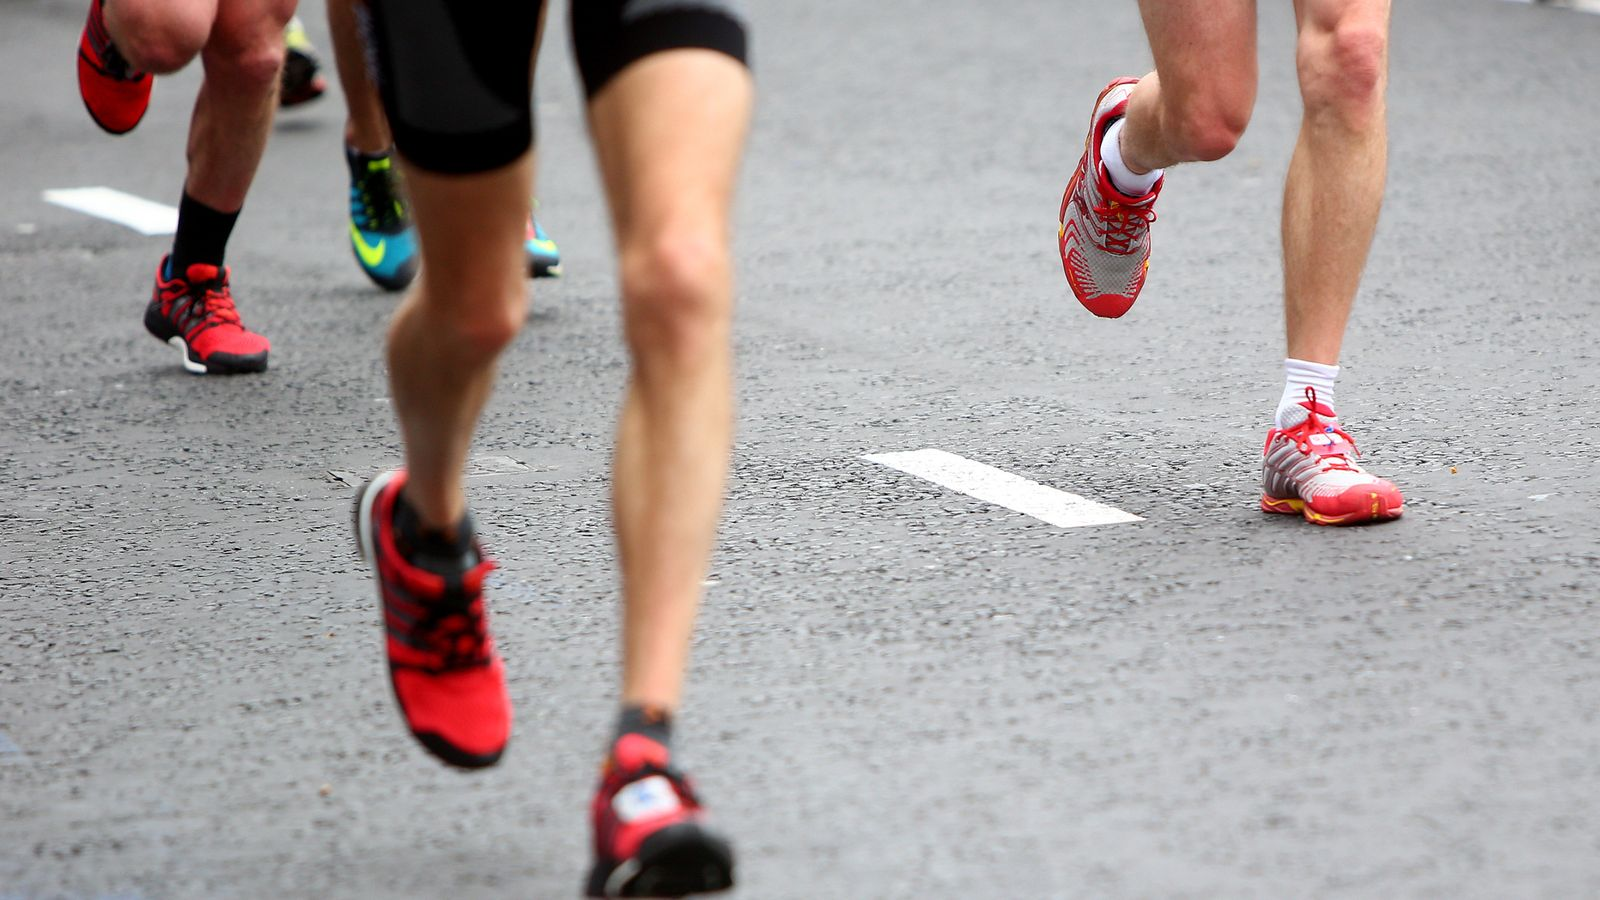 Marathon potentially hit by 'rampant, unchecked' doping, warns Athletics Integrity Unit